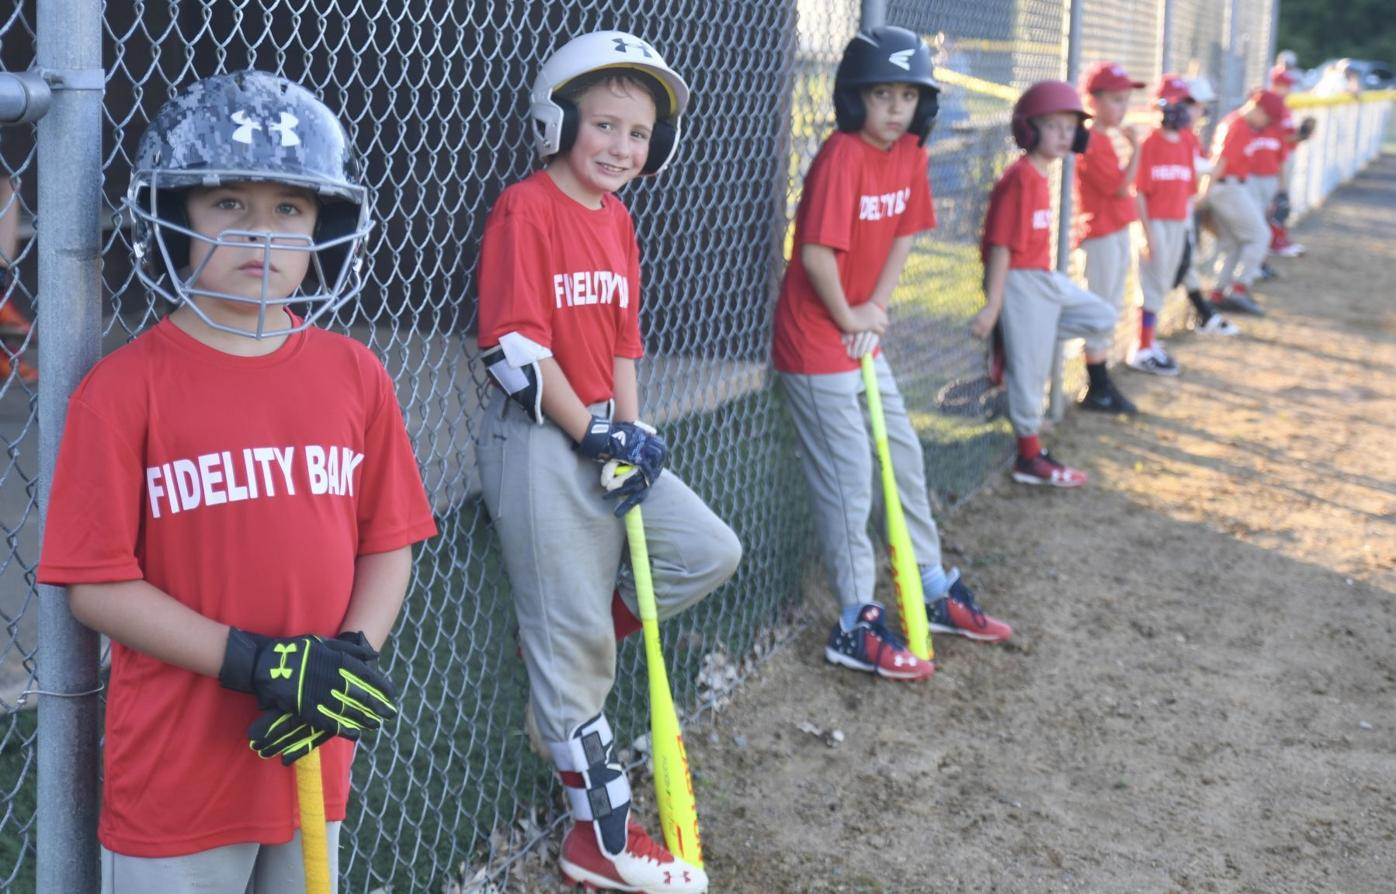 Local Little League play continues with restrictions amid pandemic